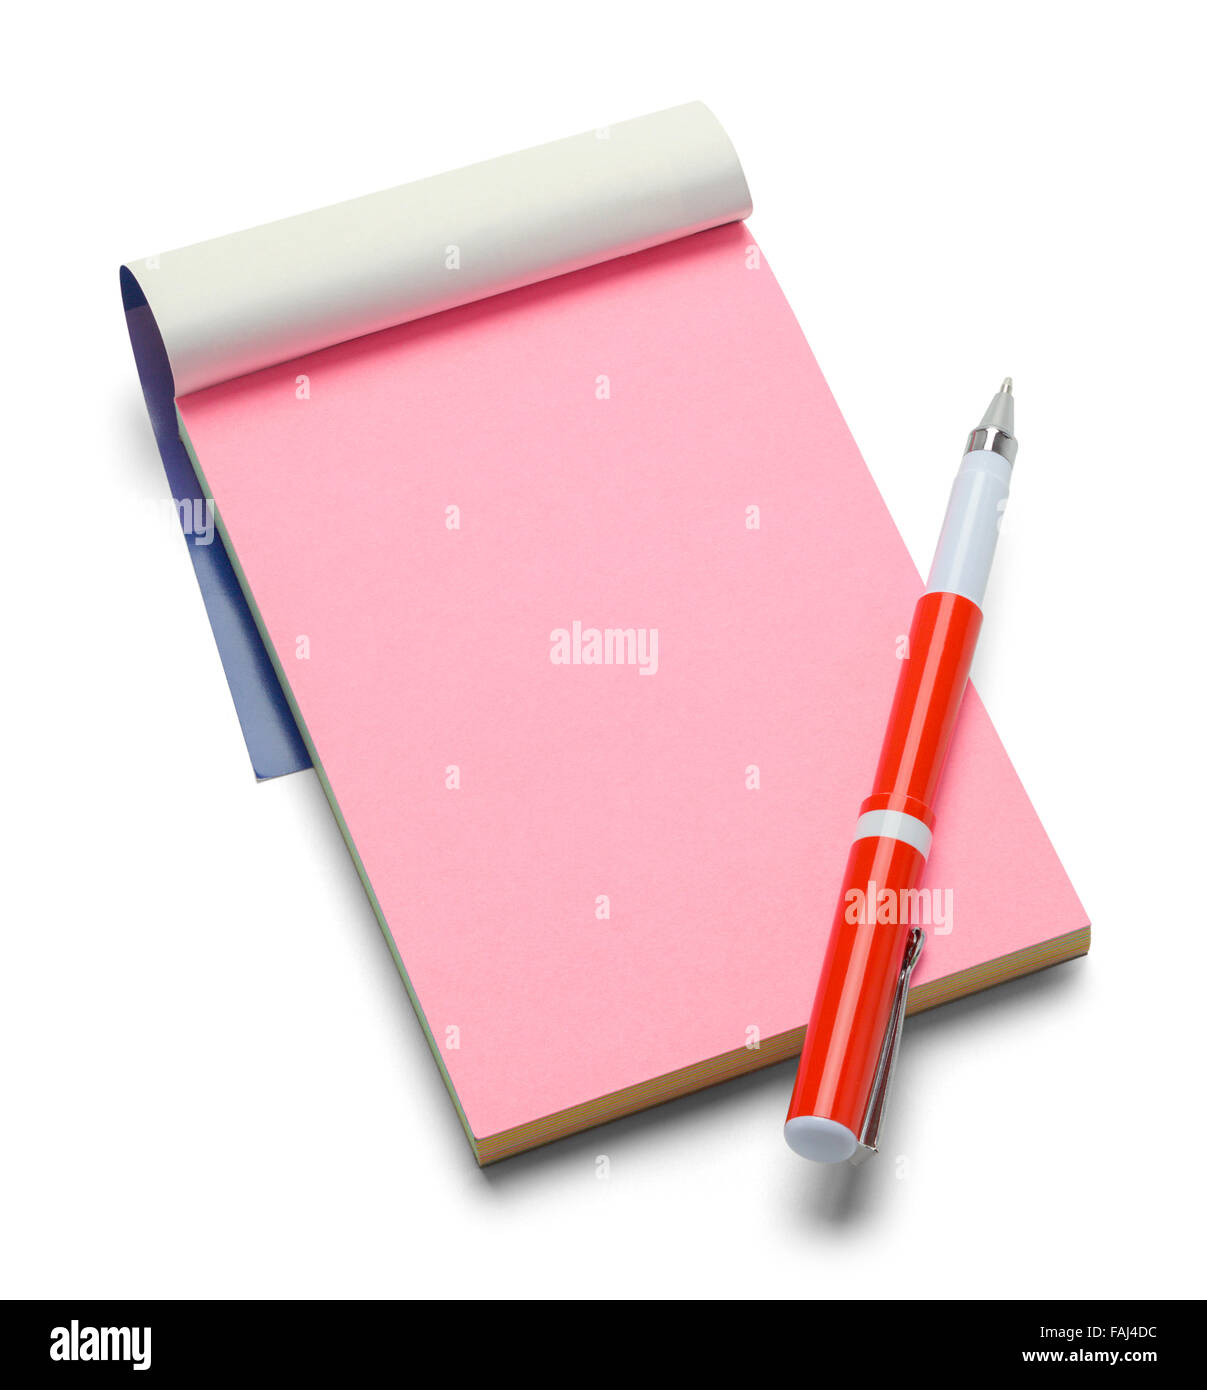 Kleine rosa Notizblock und Stift, Isolated on White Background. Stockbild